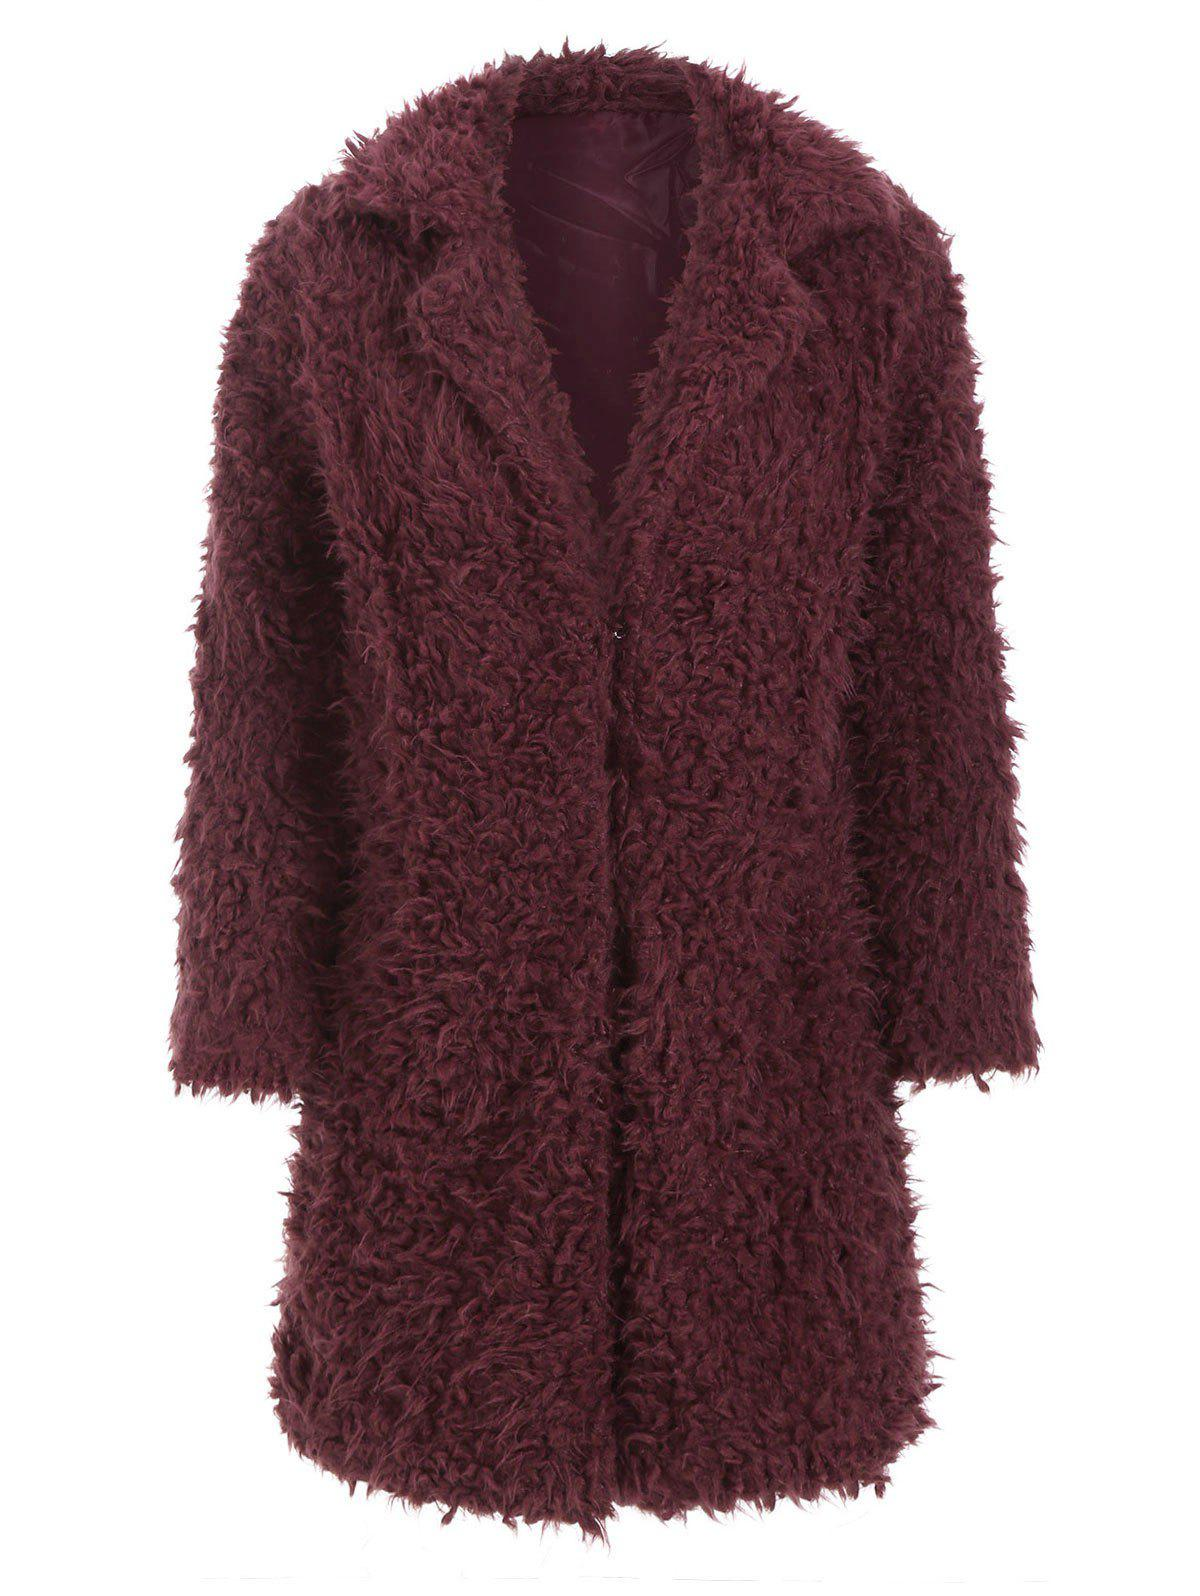 Hook-and-eye Faux Shearling Coat - RED WINE 2XL